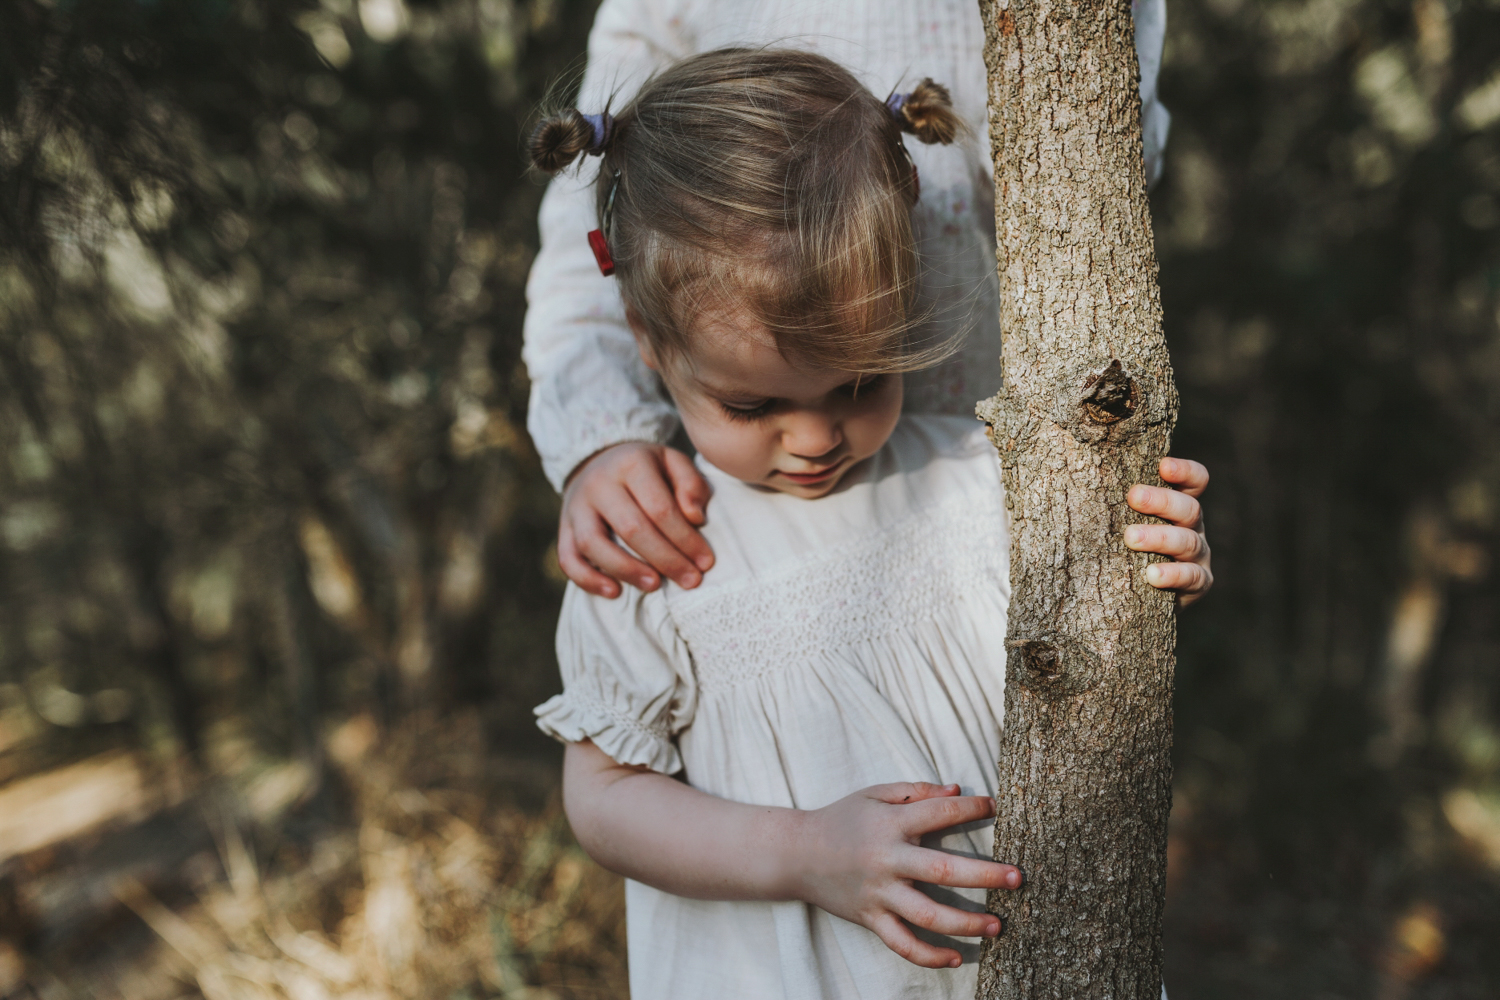 Girl plays with bark on tree as her sister rests her hand on her shoulder during a family session.